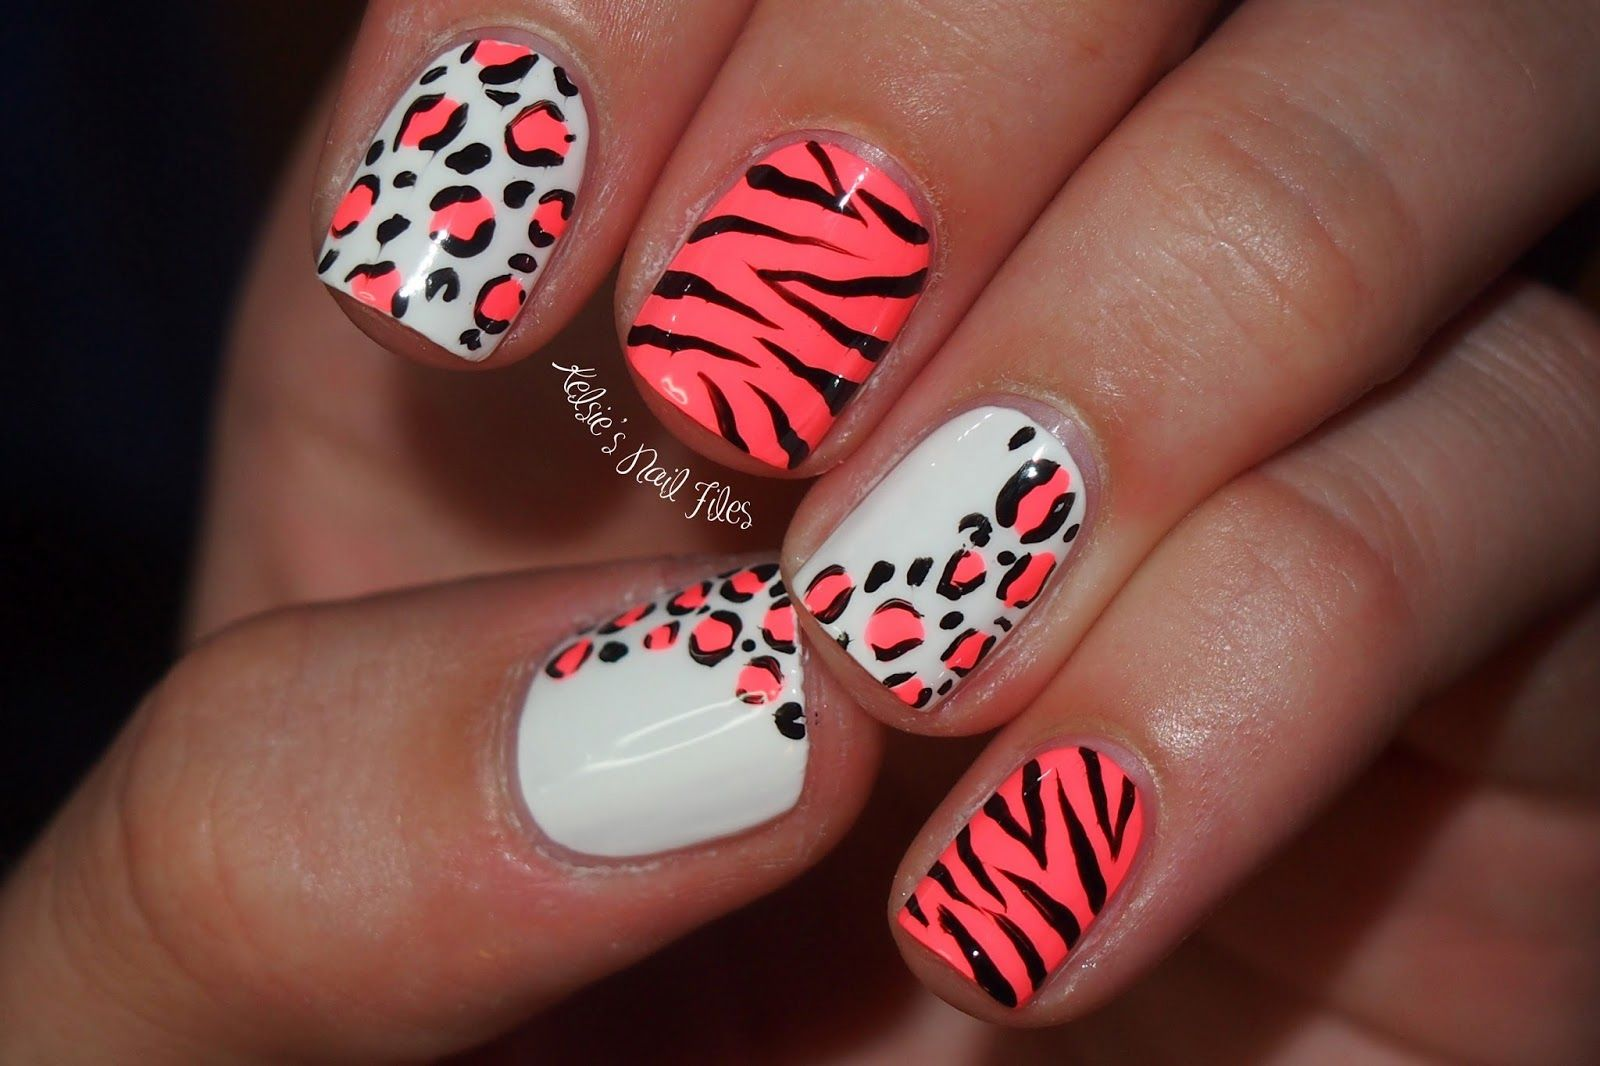 Animal Print Nail Art Design Idea With Zebra And Cheetah Pattern ...